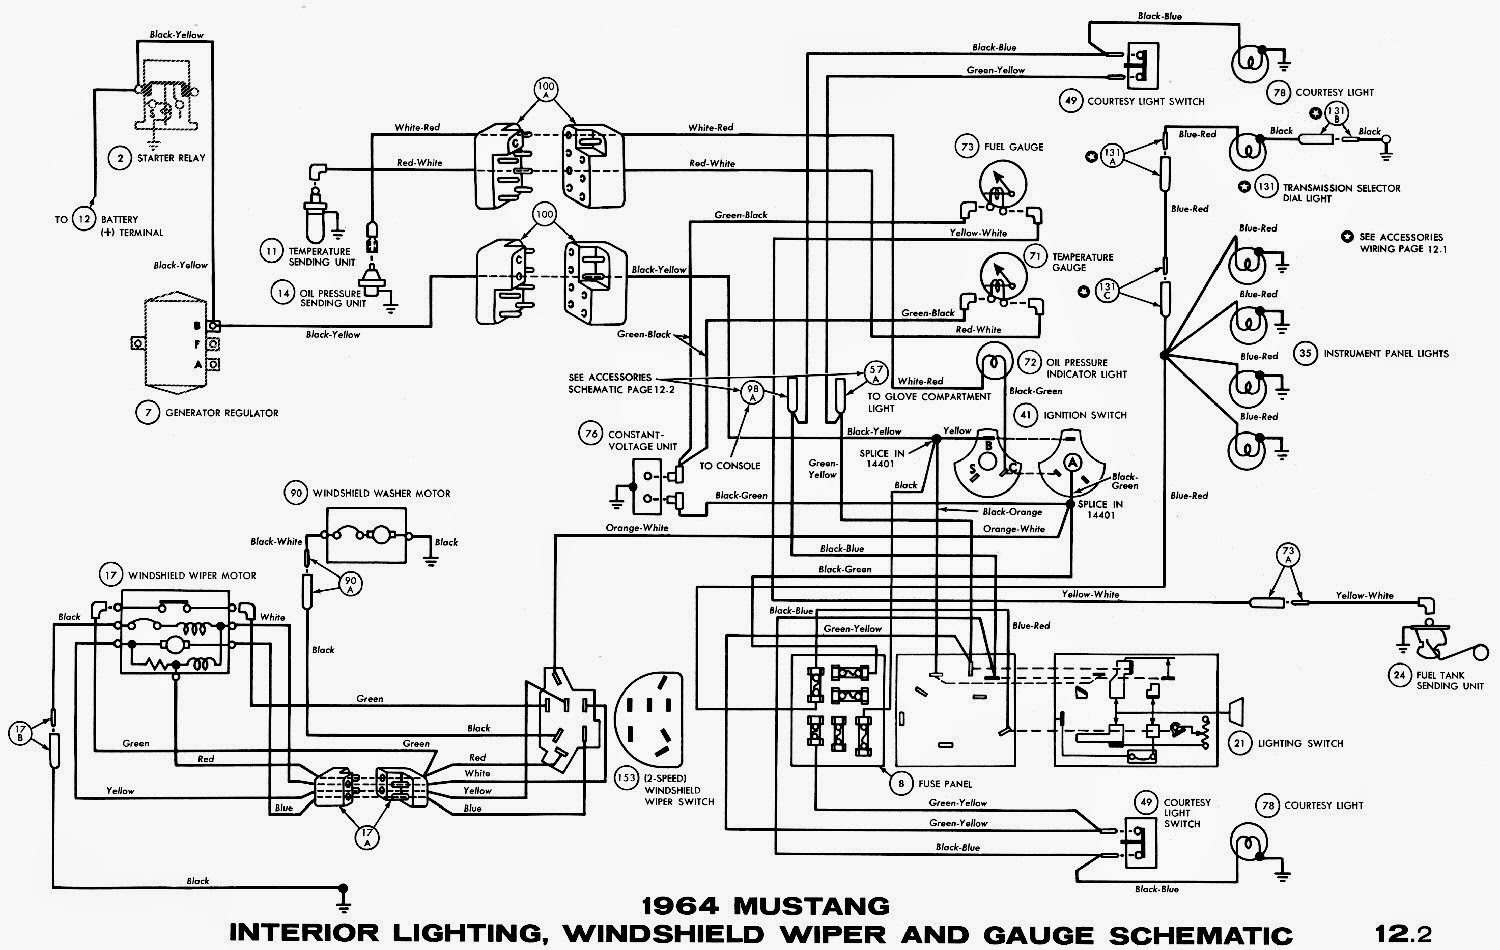 1966 mustang dash light wiring diagram sample er for hotel management system 1964 diagrams schematic